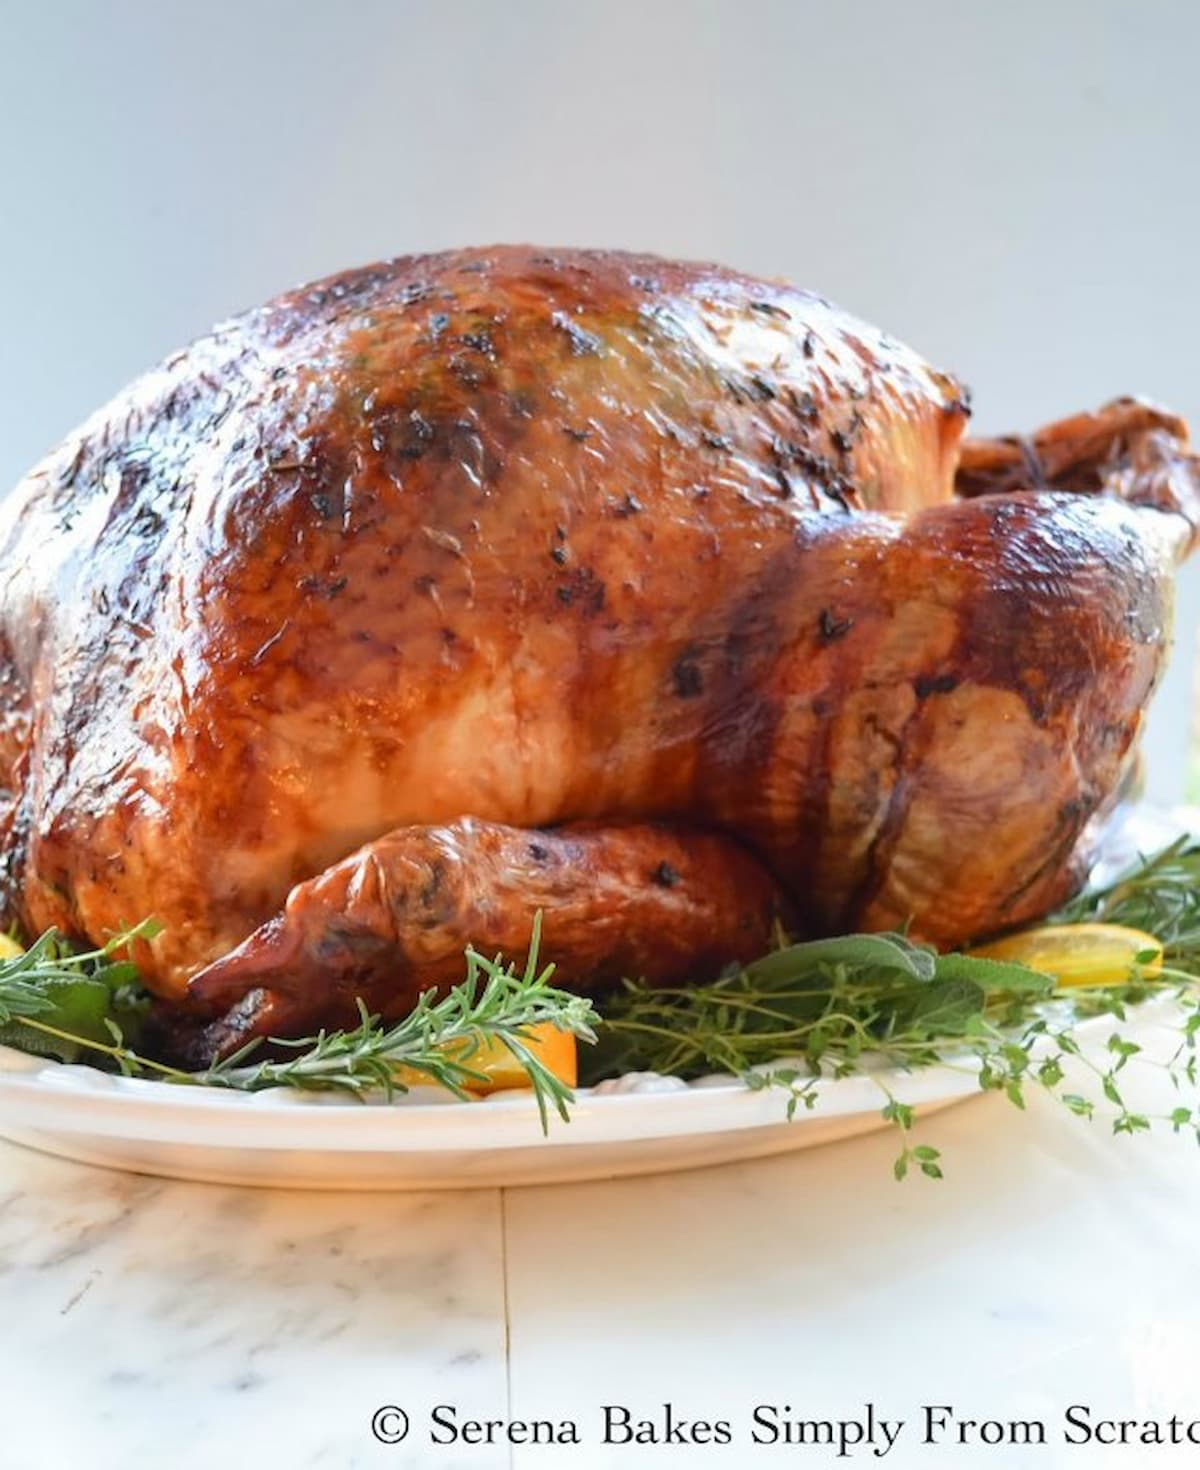 Roasted Cheesecloth Turkey with Herb Butter on a white plate with herbs around the edge and orange slices.